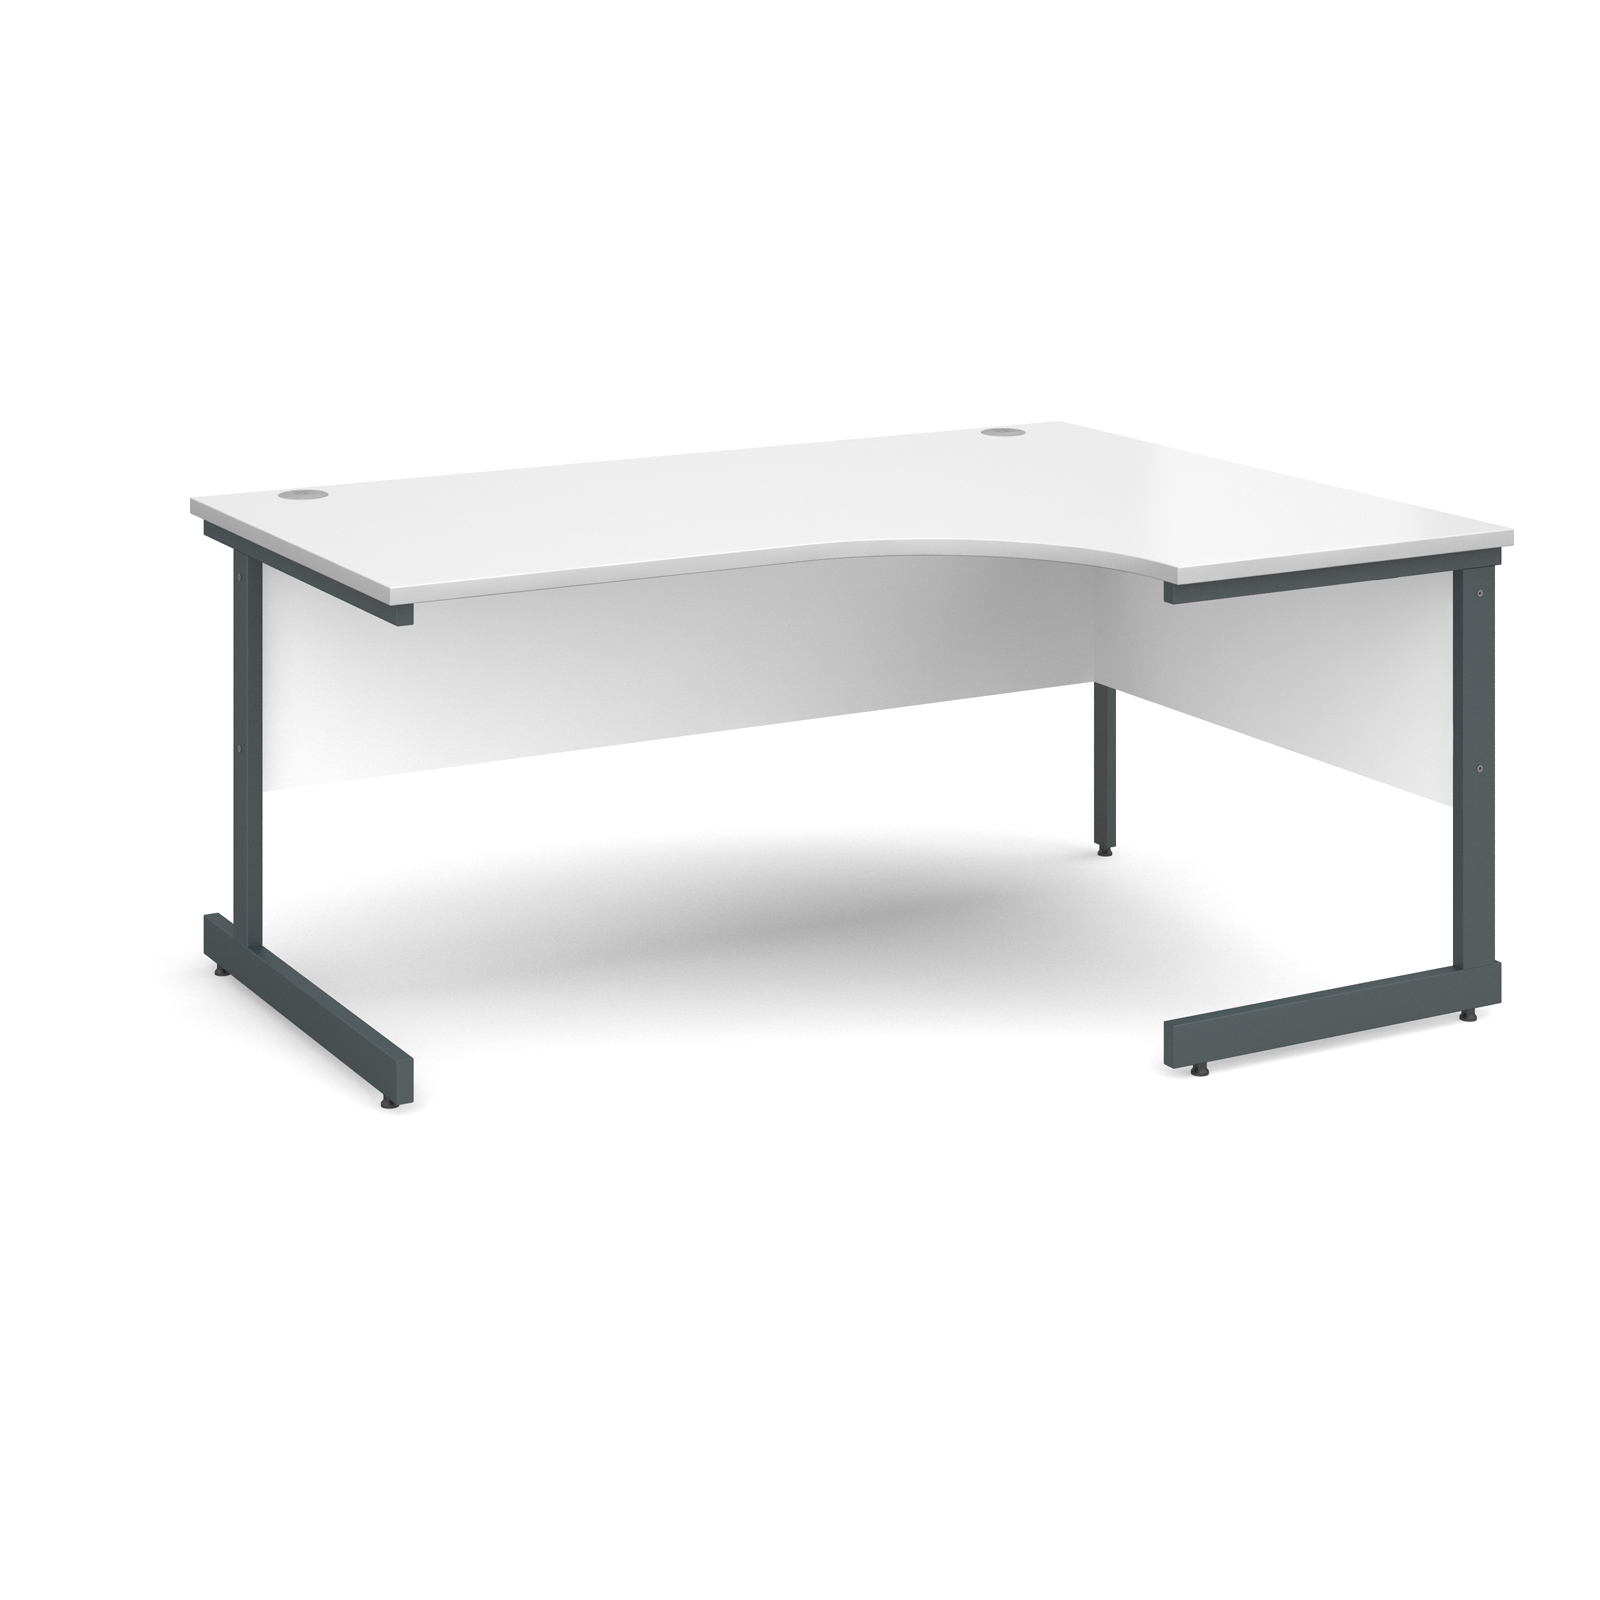 Contract 25 right hand ergonomic desk 1600mm - graphite cantilever frame, white top